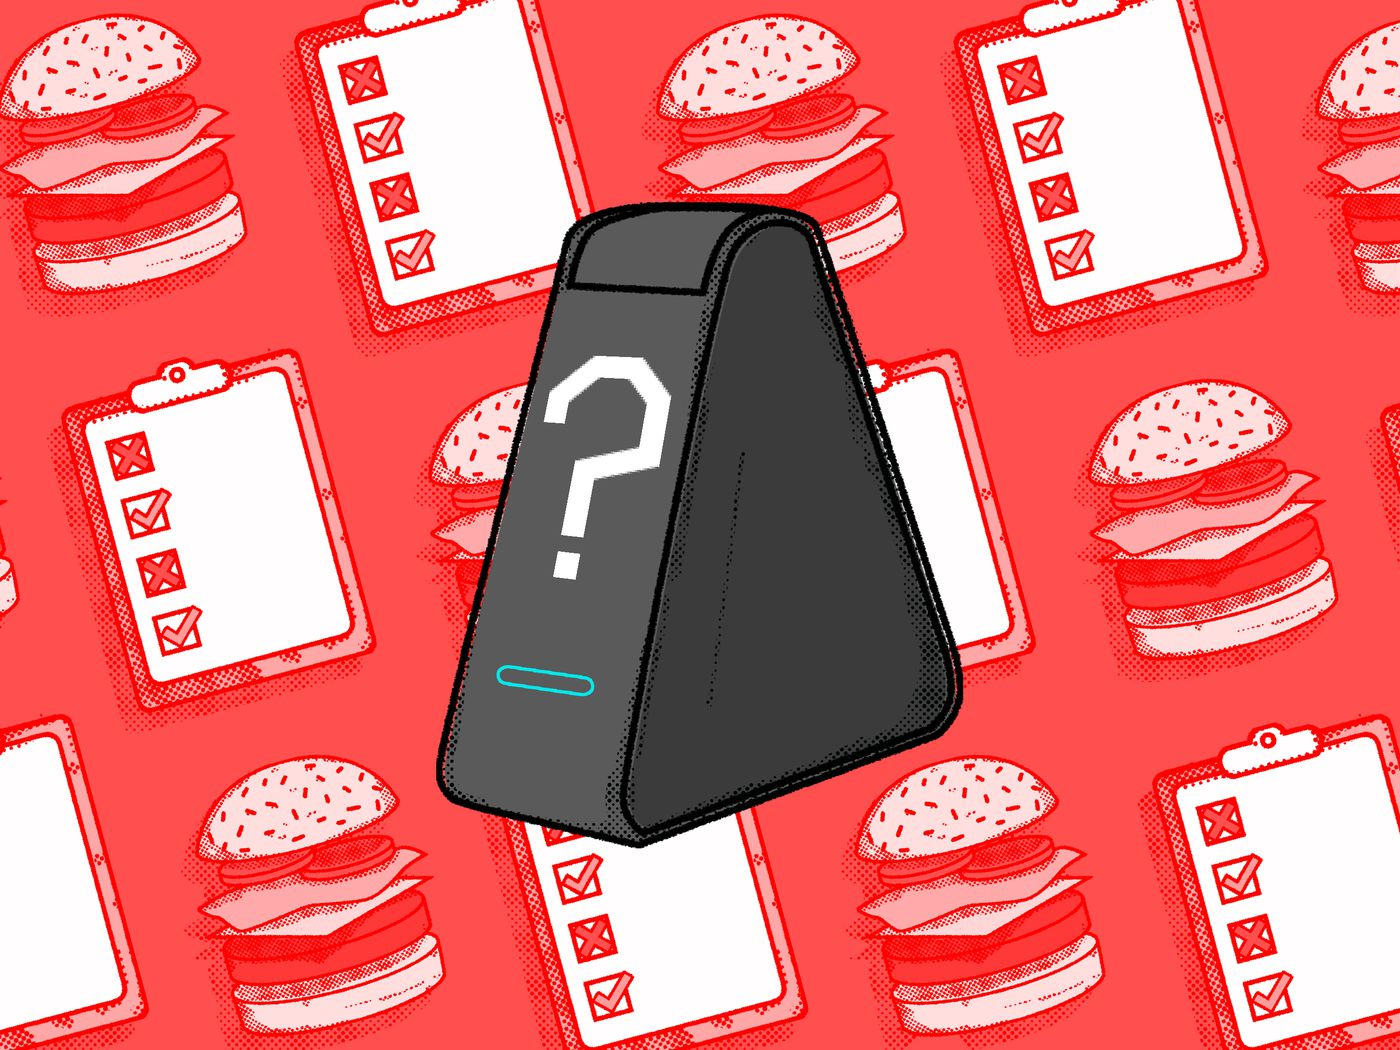 The potentially perilous promise of food allergen sensors